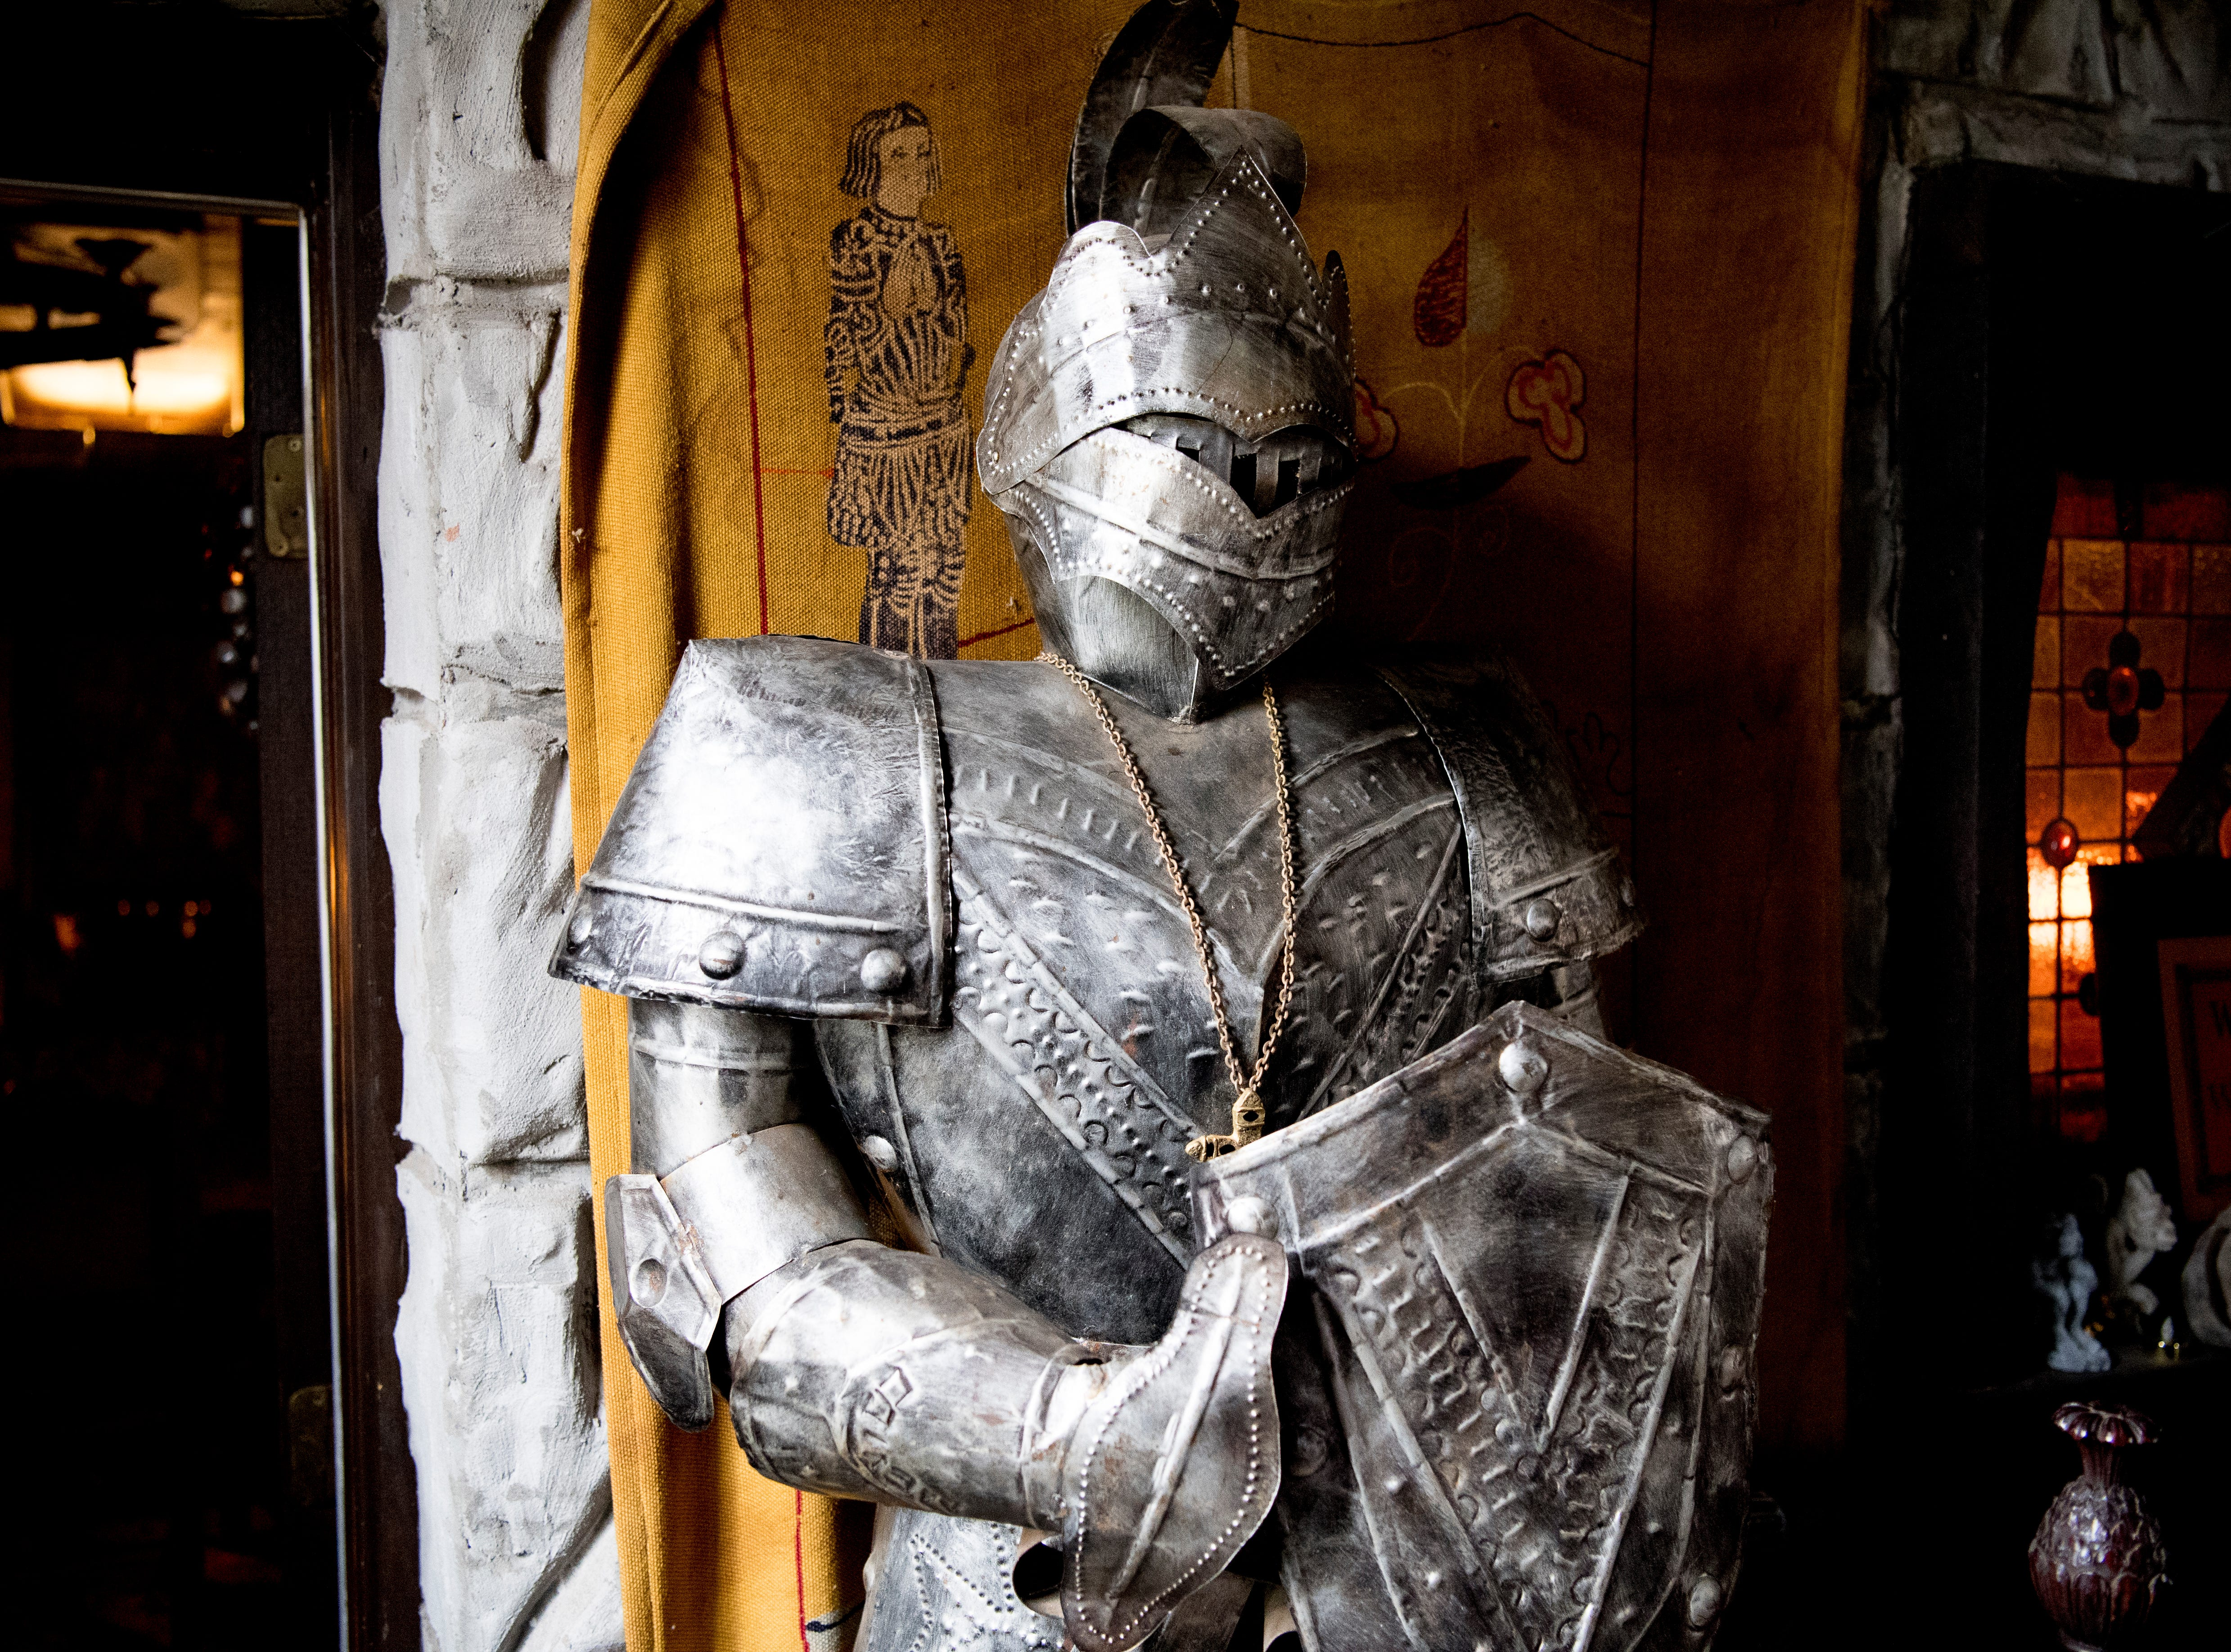 Visitors are greeted by a suit of knight's armor in the main entrance inside Williamswood Castle in South Knoxville, Tennessee on Thursday, January 17, 2019. The home, modeled after a medieval castle, was built by Julia Tucker in 1991 and took 6 years to complete. Many of the items in the home were sourced from around the Knoxville area.